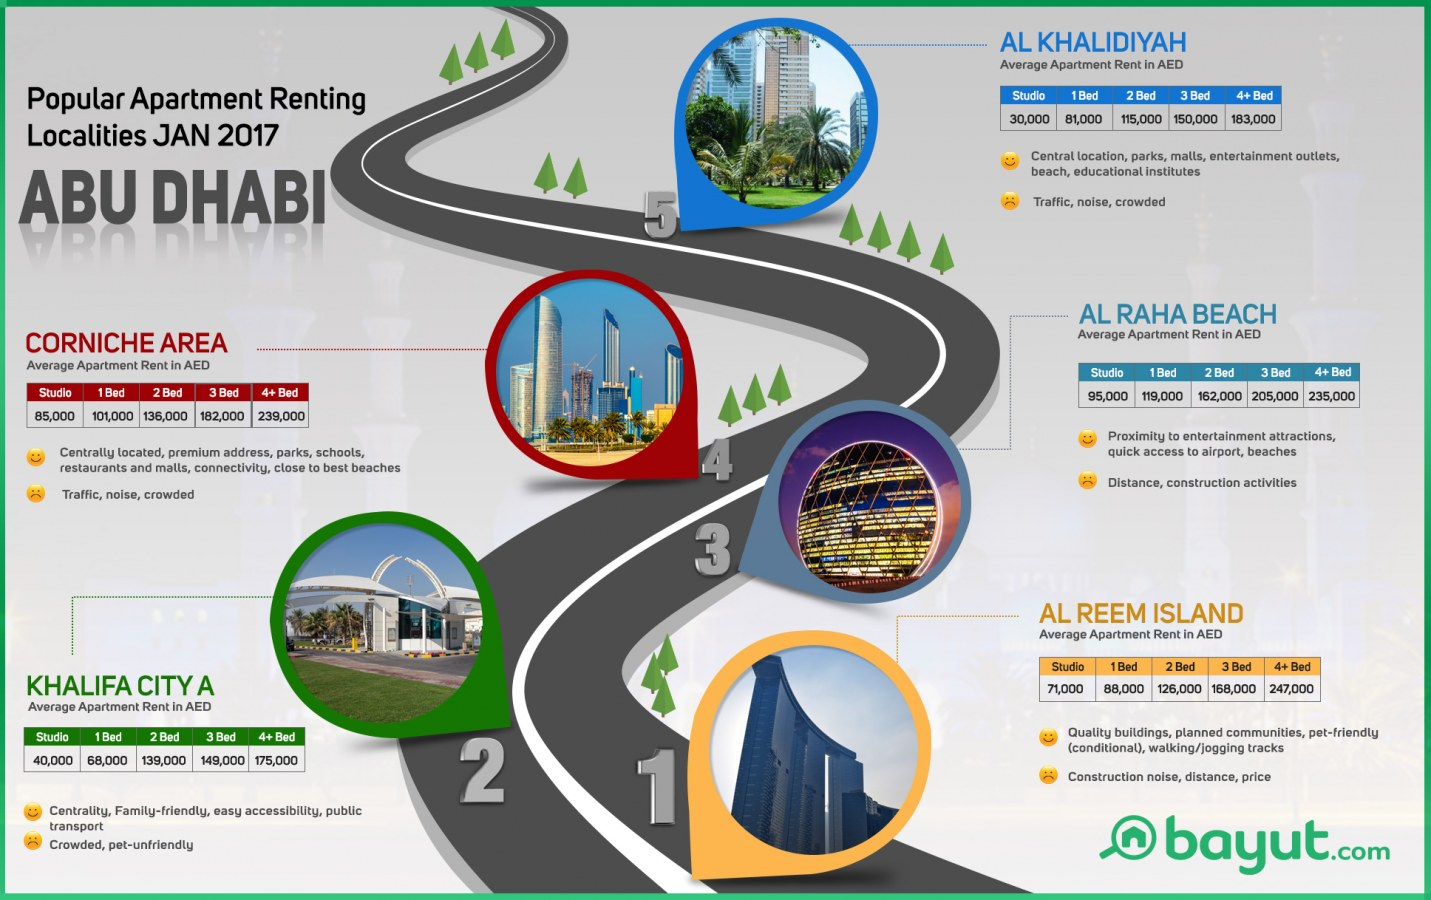 Infographic on top apartment renting areas of Abu Dhabi Jan 2017